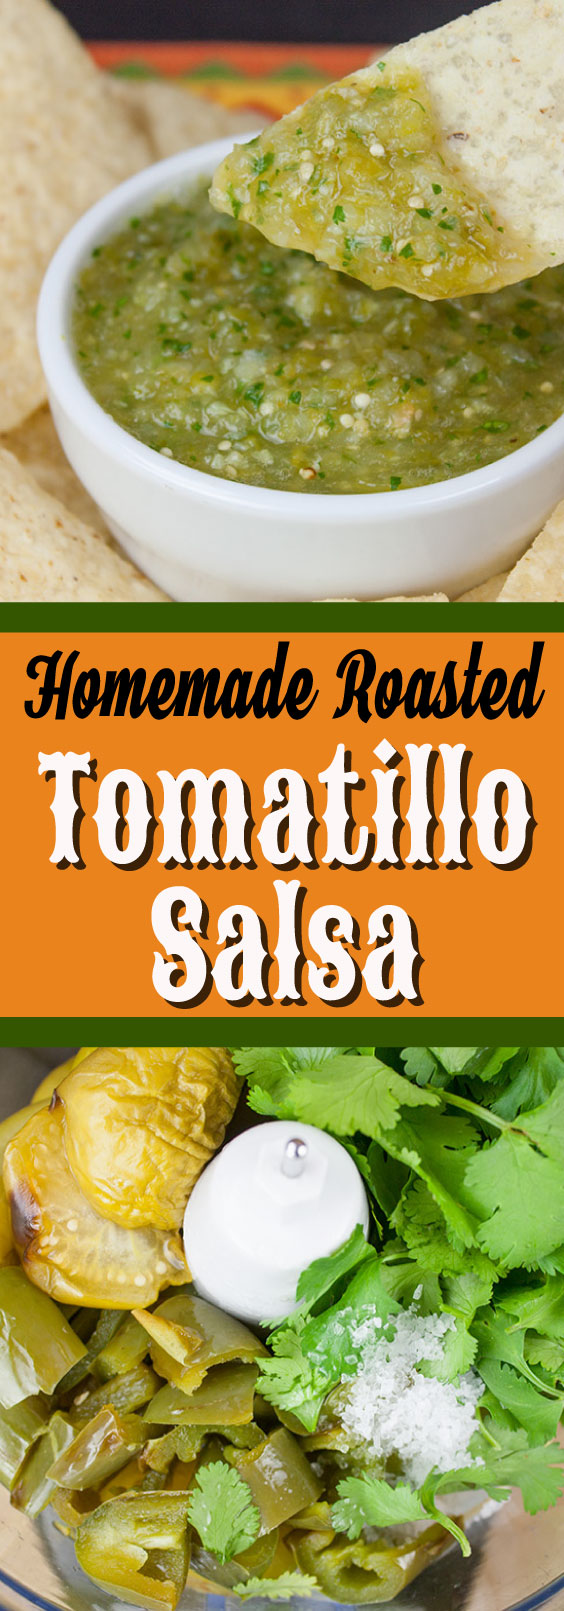 Homemade Roasted Tomatillo Salsa (salsa verde) - Just like your favorite restaurant's, if not better! Easy, fresh, bright, delicious and so much better than the over salted store bought kind.